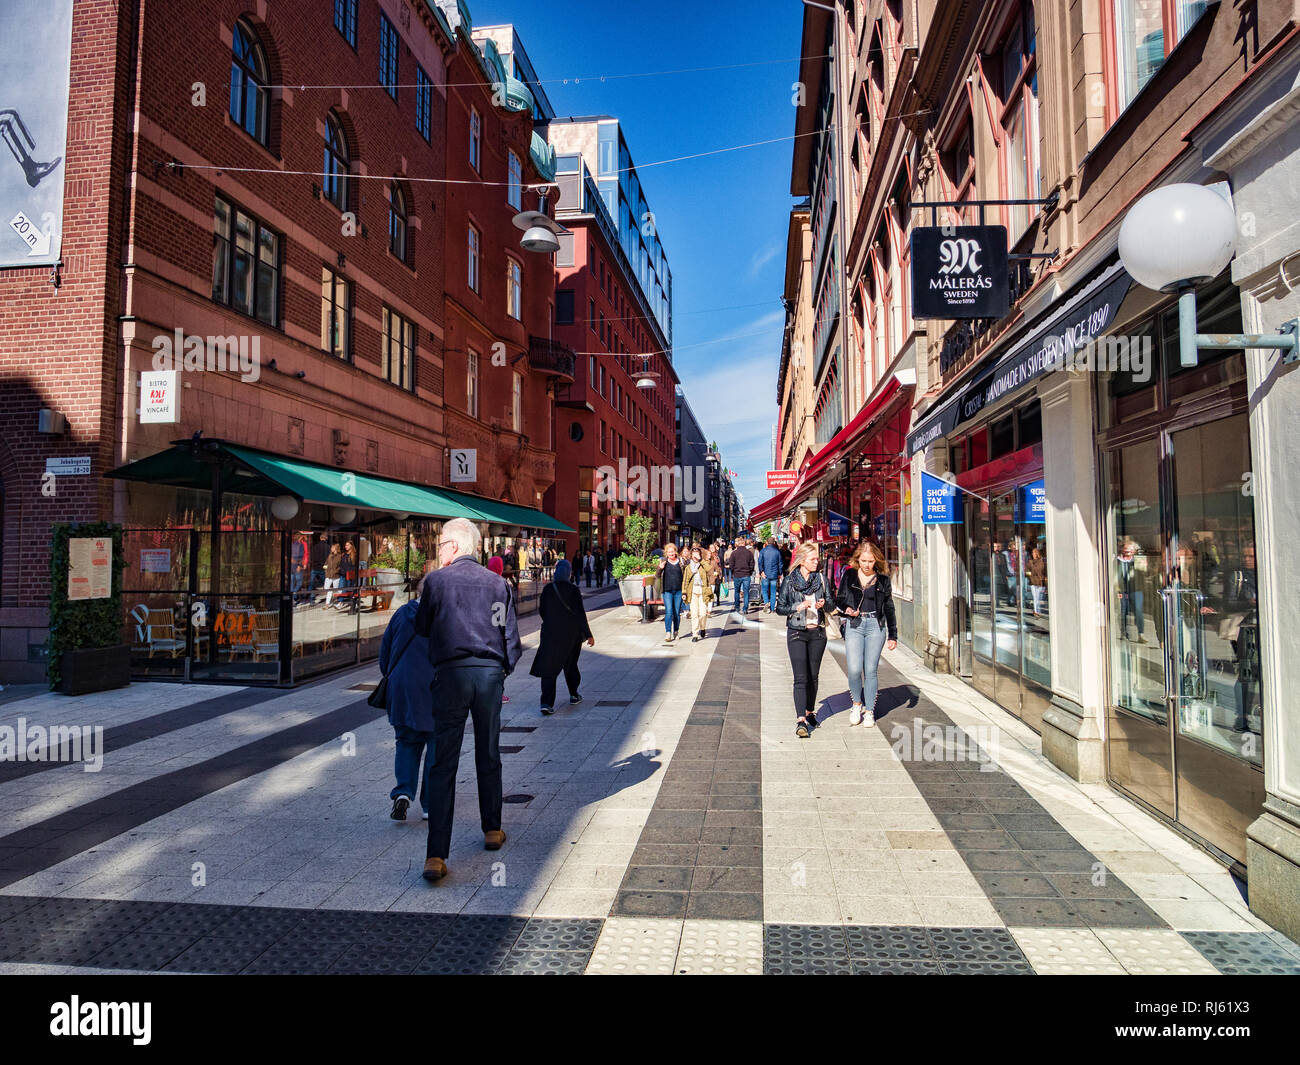 16 September 2018: Stockholm, Sweden - Shoppers in Drottninggatan on a bright sunny autumn weekend. Stock Photo